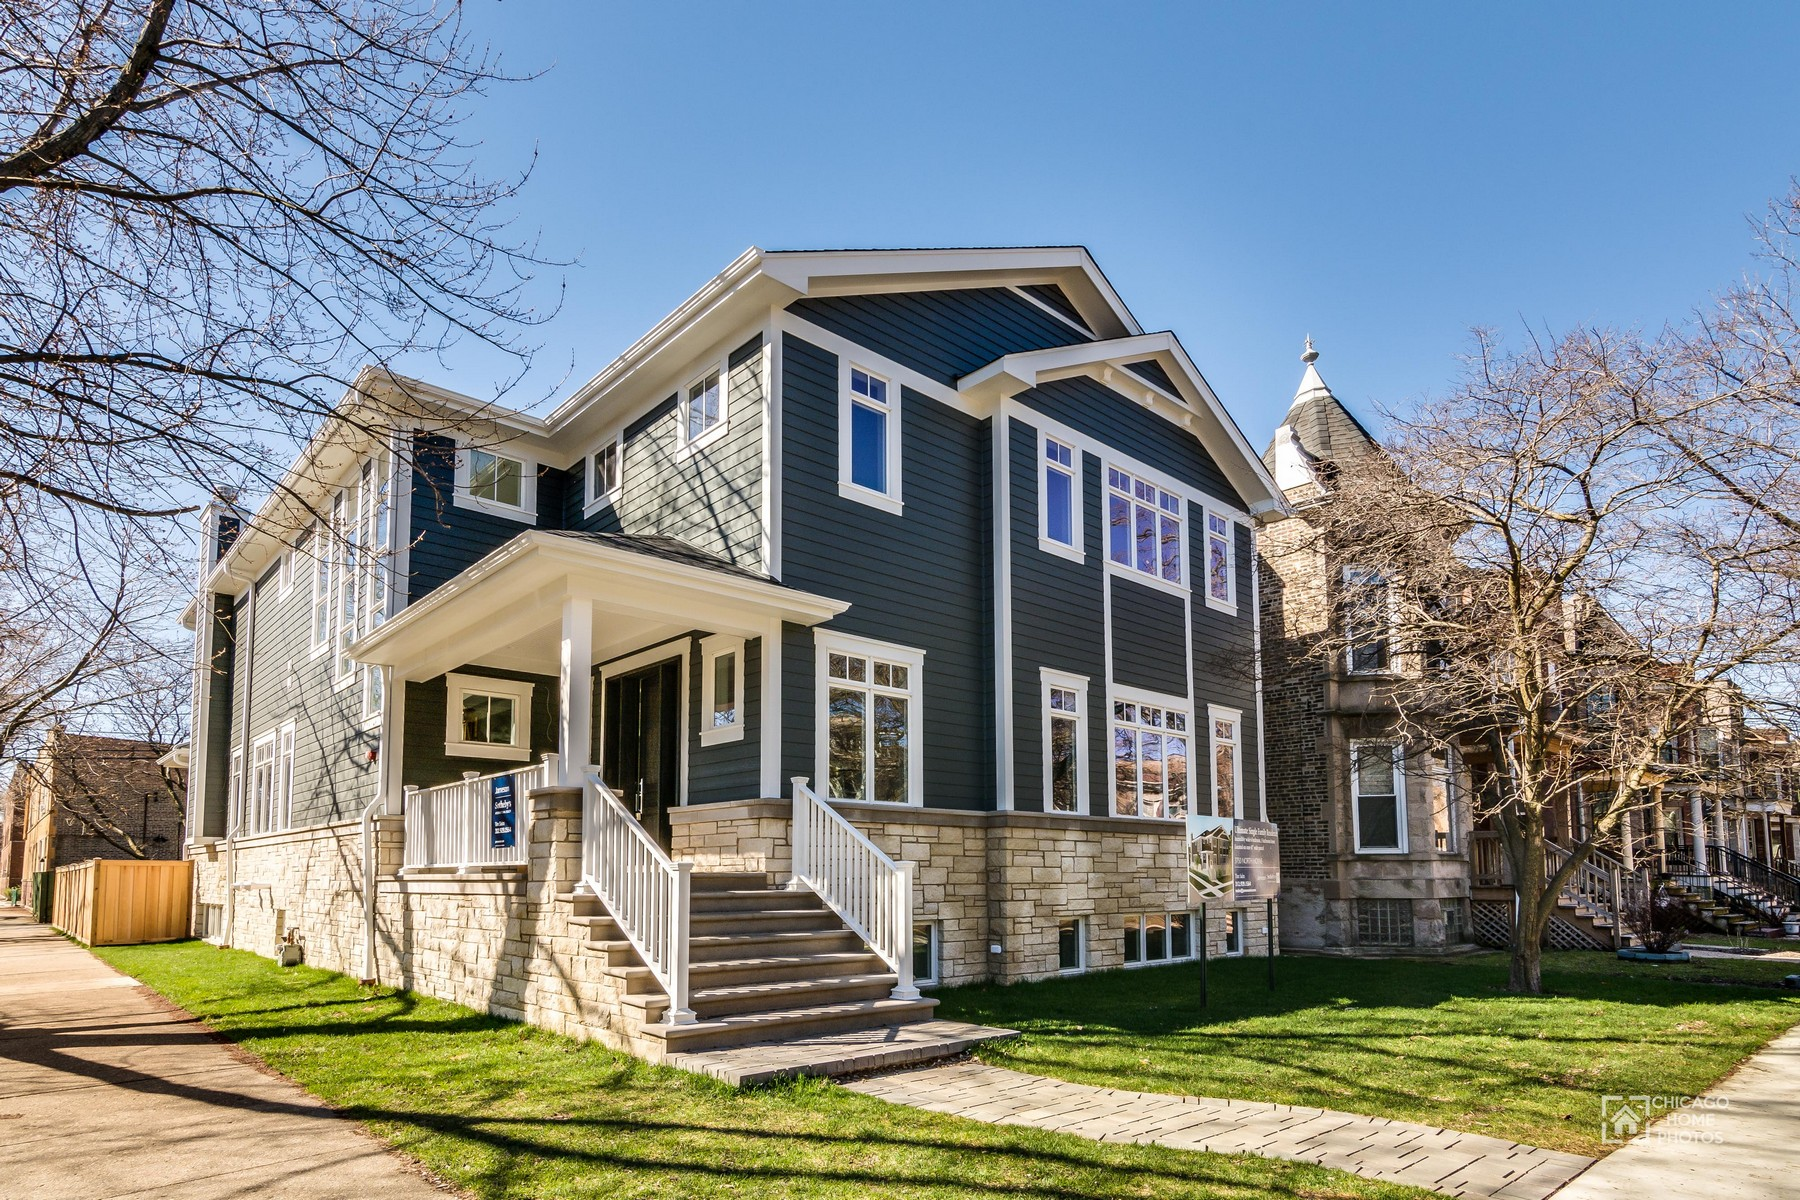 단독 가정 주택 용 매매 에 Gorgeous New Construction on Rare Corner Lot 3750 N Hoyne Avenue Chicago, 일리노이즈, 60618 미국